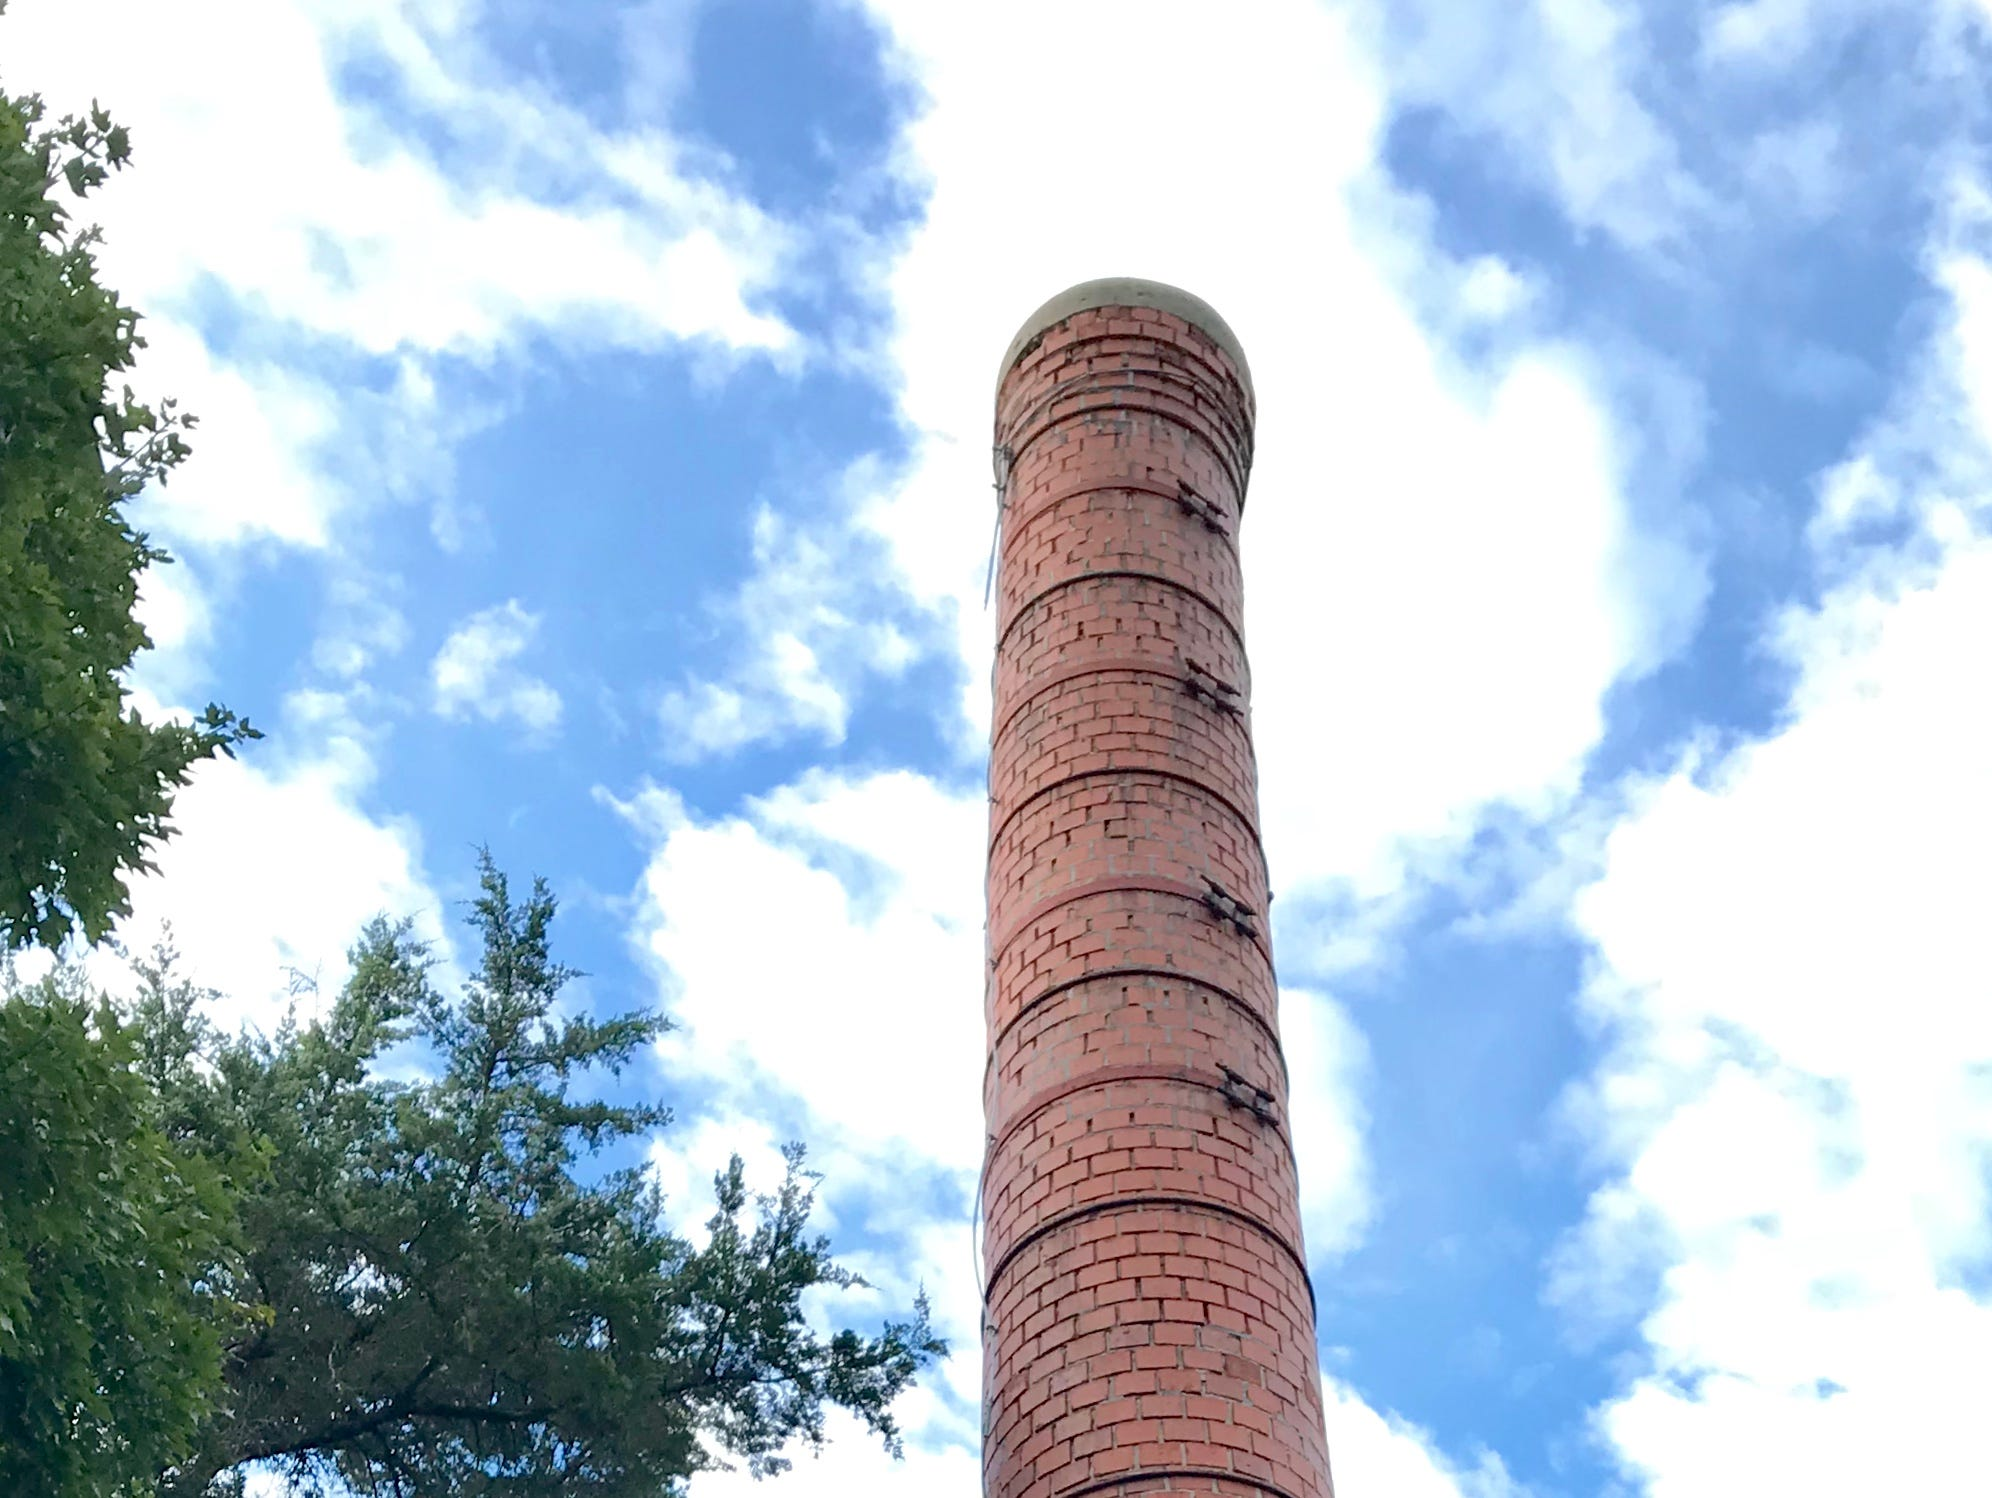 If this chimney looks crooked, it's because it is. And the owners of the Elfindale Mansion know it. It's been crooked for at least 30 years.